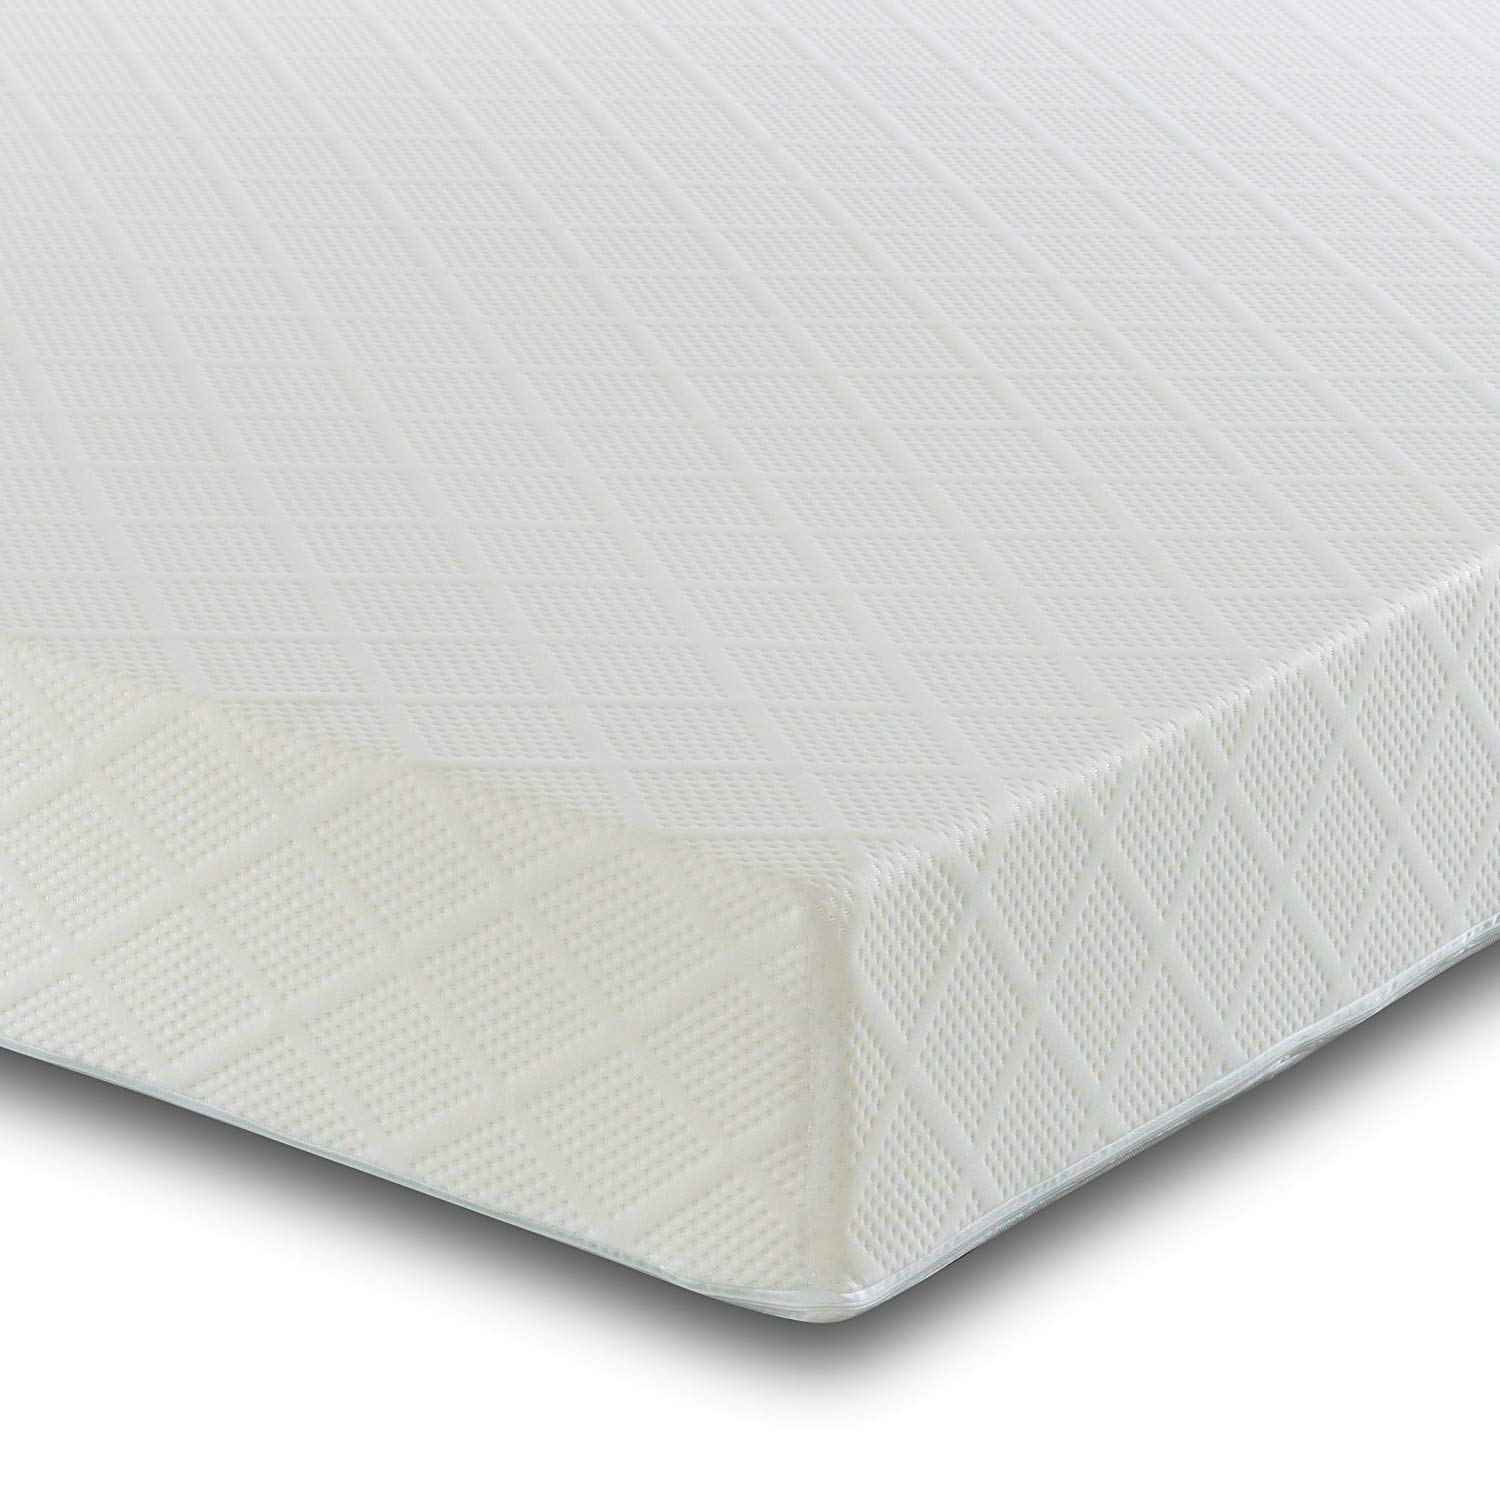 Visco Therapy 4Ft6 Double Reflex Foam Mattress with Two Pillows - Orthopaedic Support - Hypoallergenic – Firm